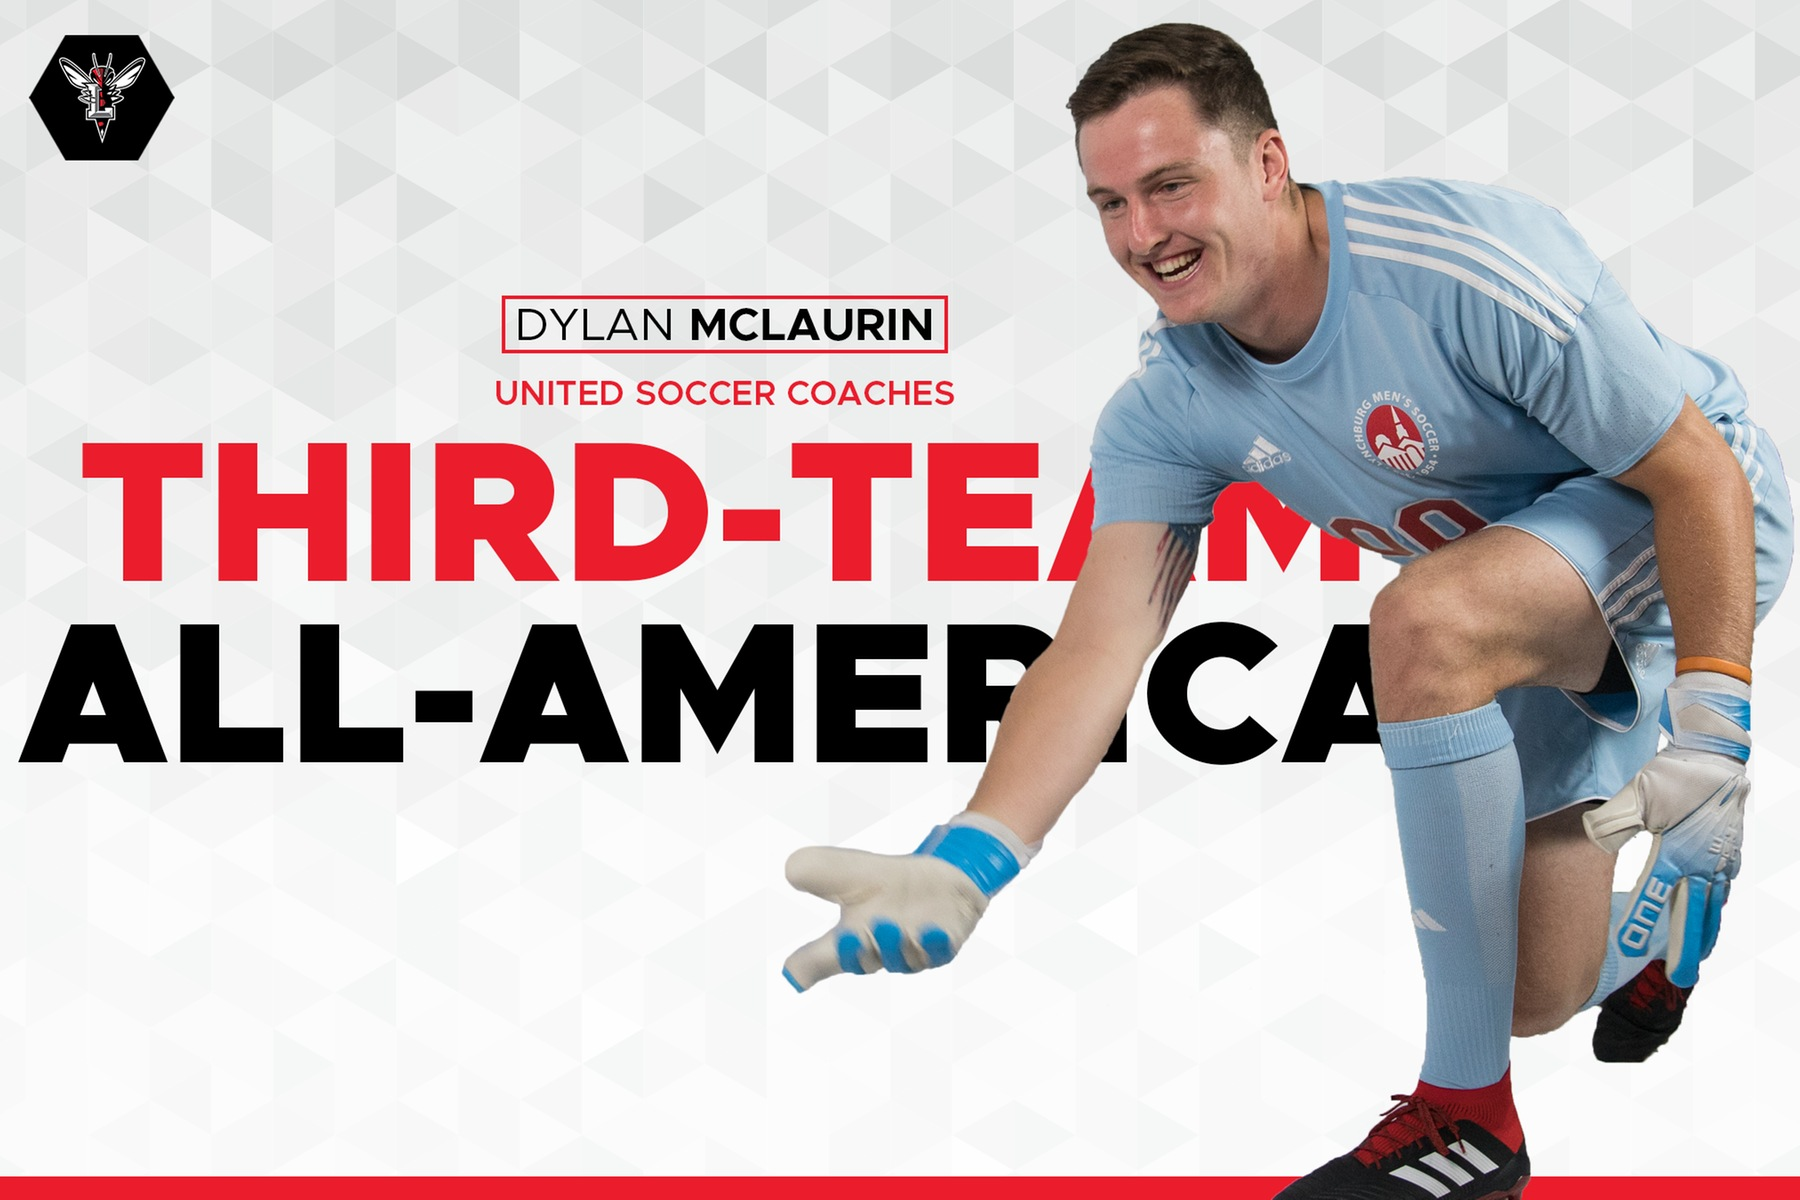 Image of Dylan McLaurin rolling a soccer ball, cutout on white background. Text: Dylan McLaurin Third-team All-America